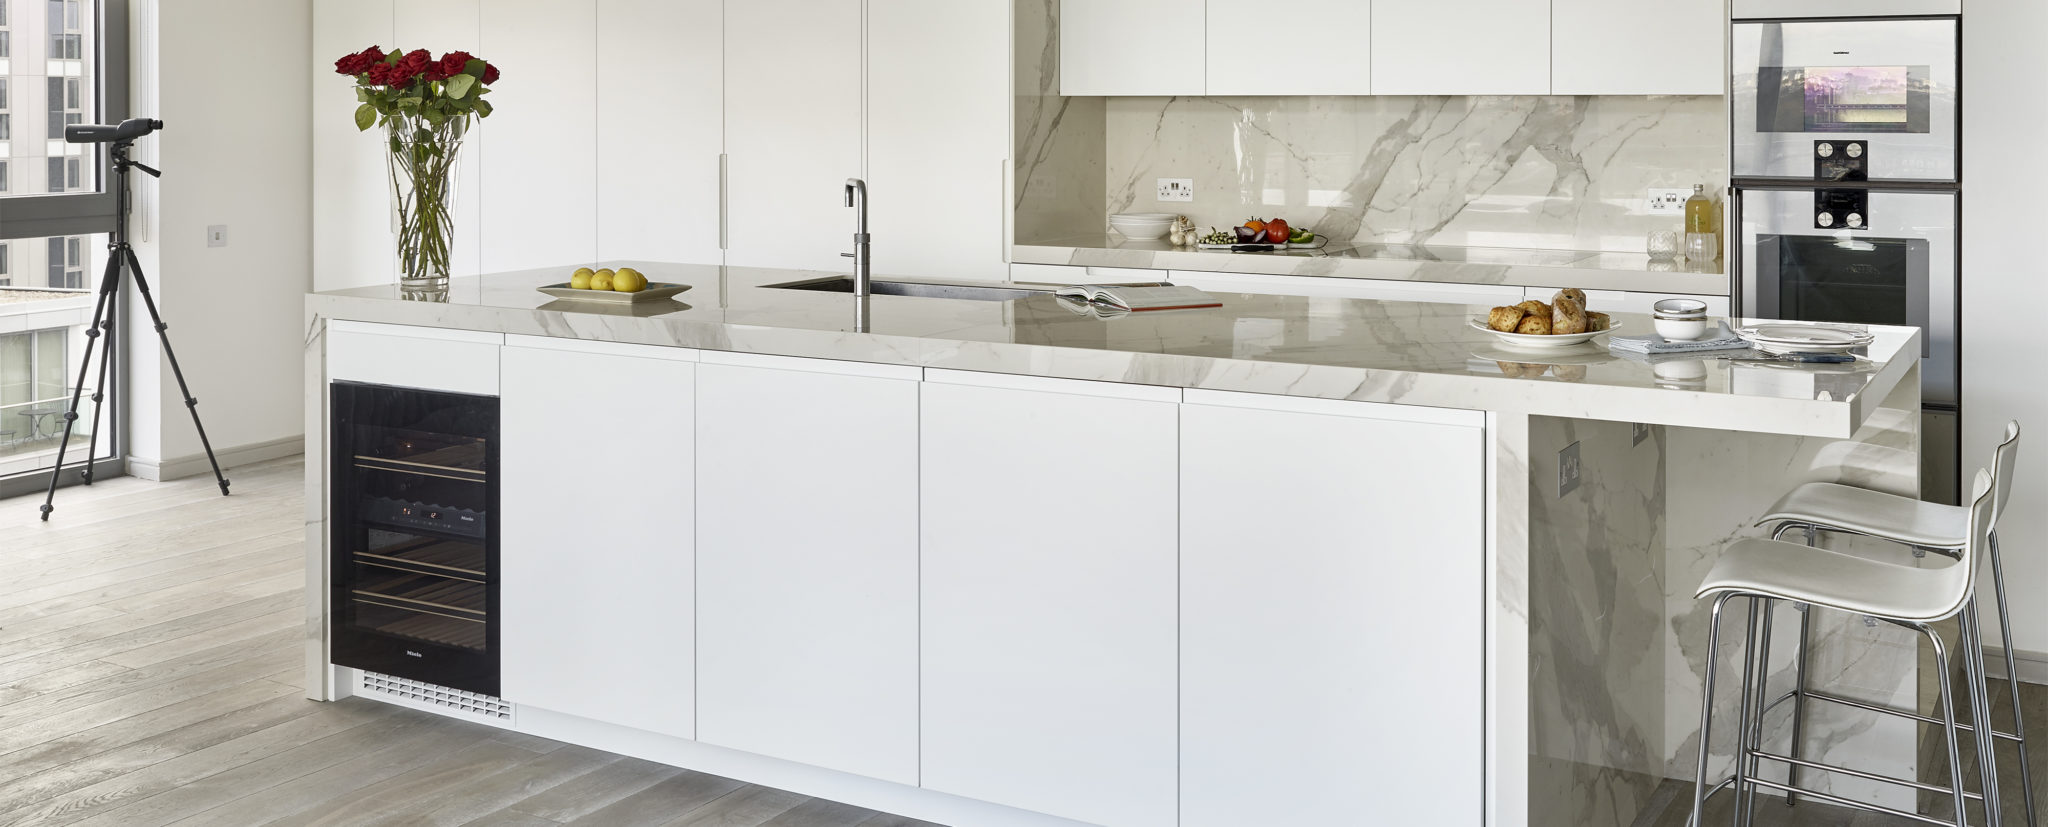 Modern penthouse kitchen for riverside apartment in Wandsworth London - handleless white matt lacquer kitchen cabinets with Laminam Staturio effect marble island, splashback and worktops